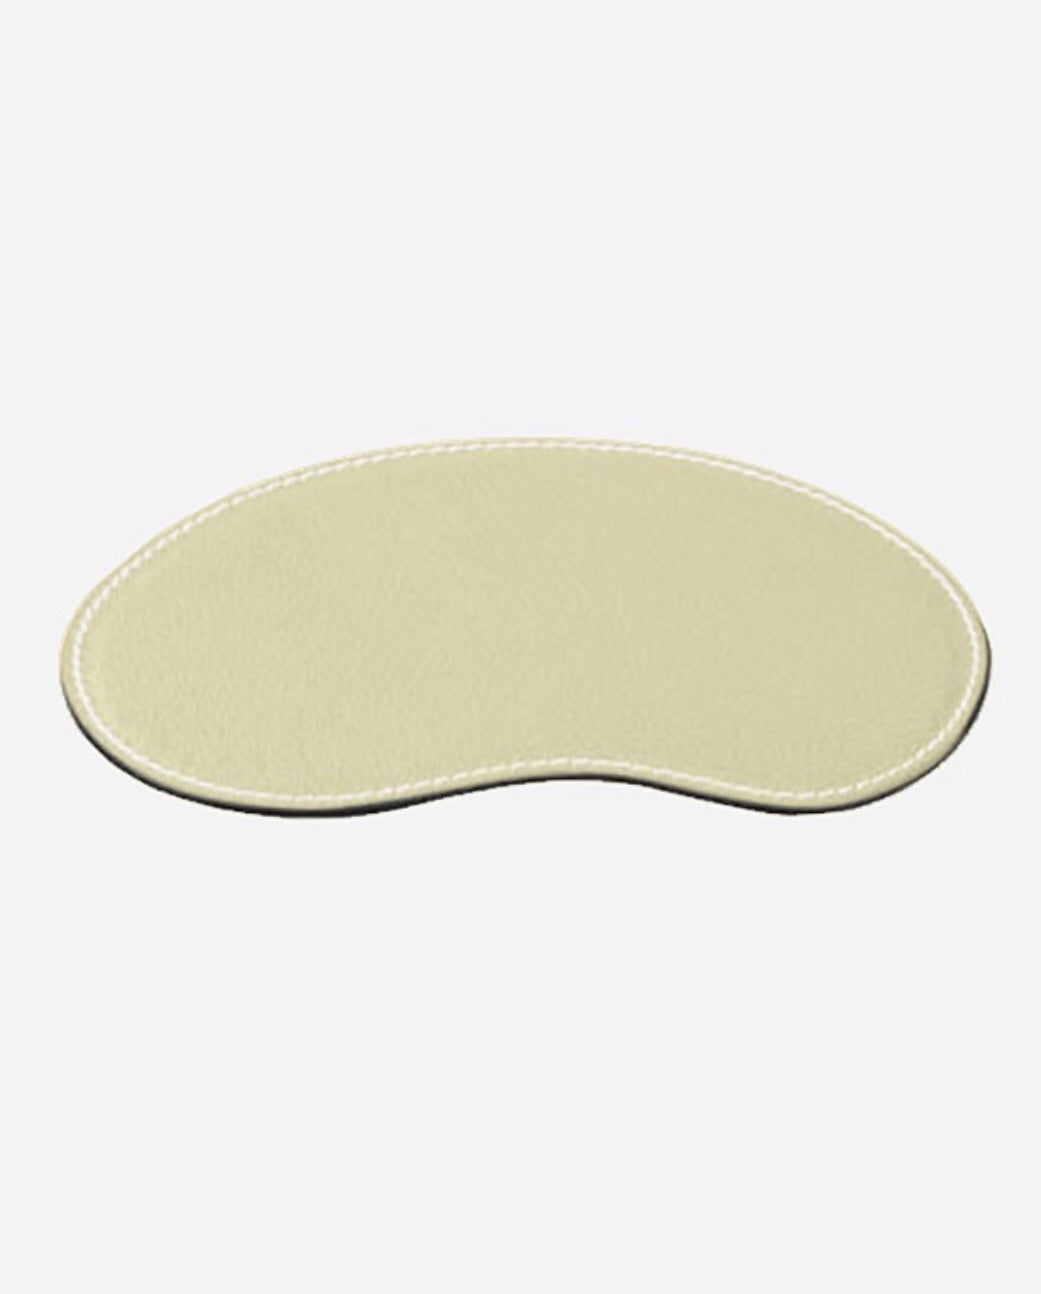 NELLO MOUSE PAD - IVORY